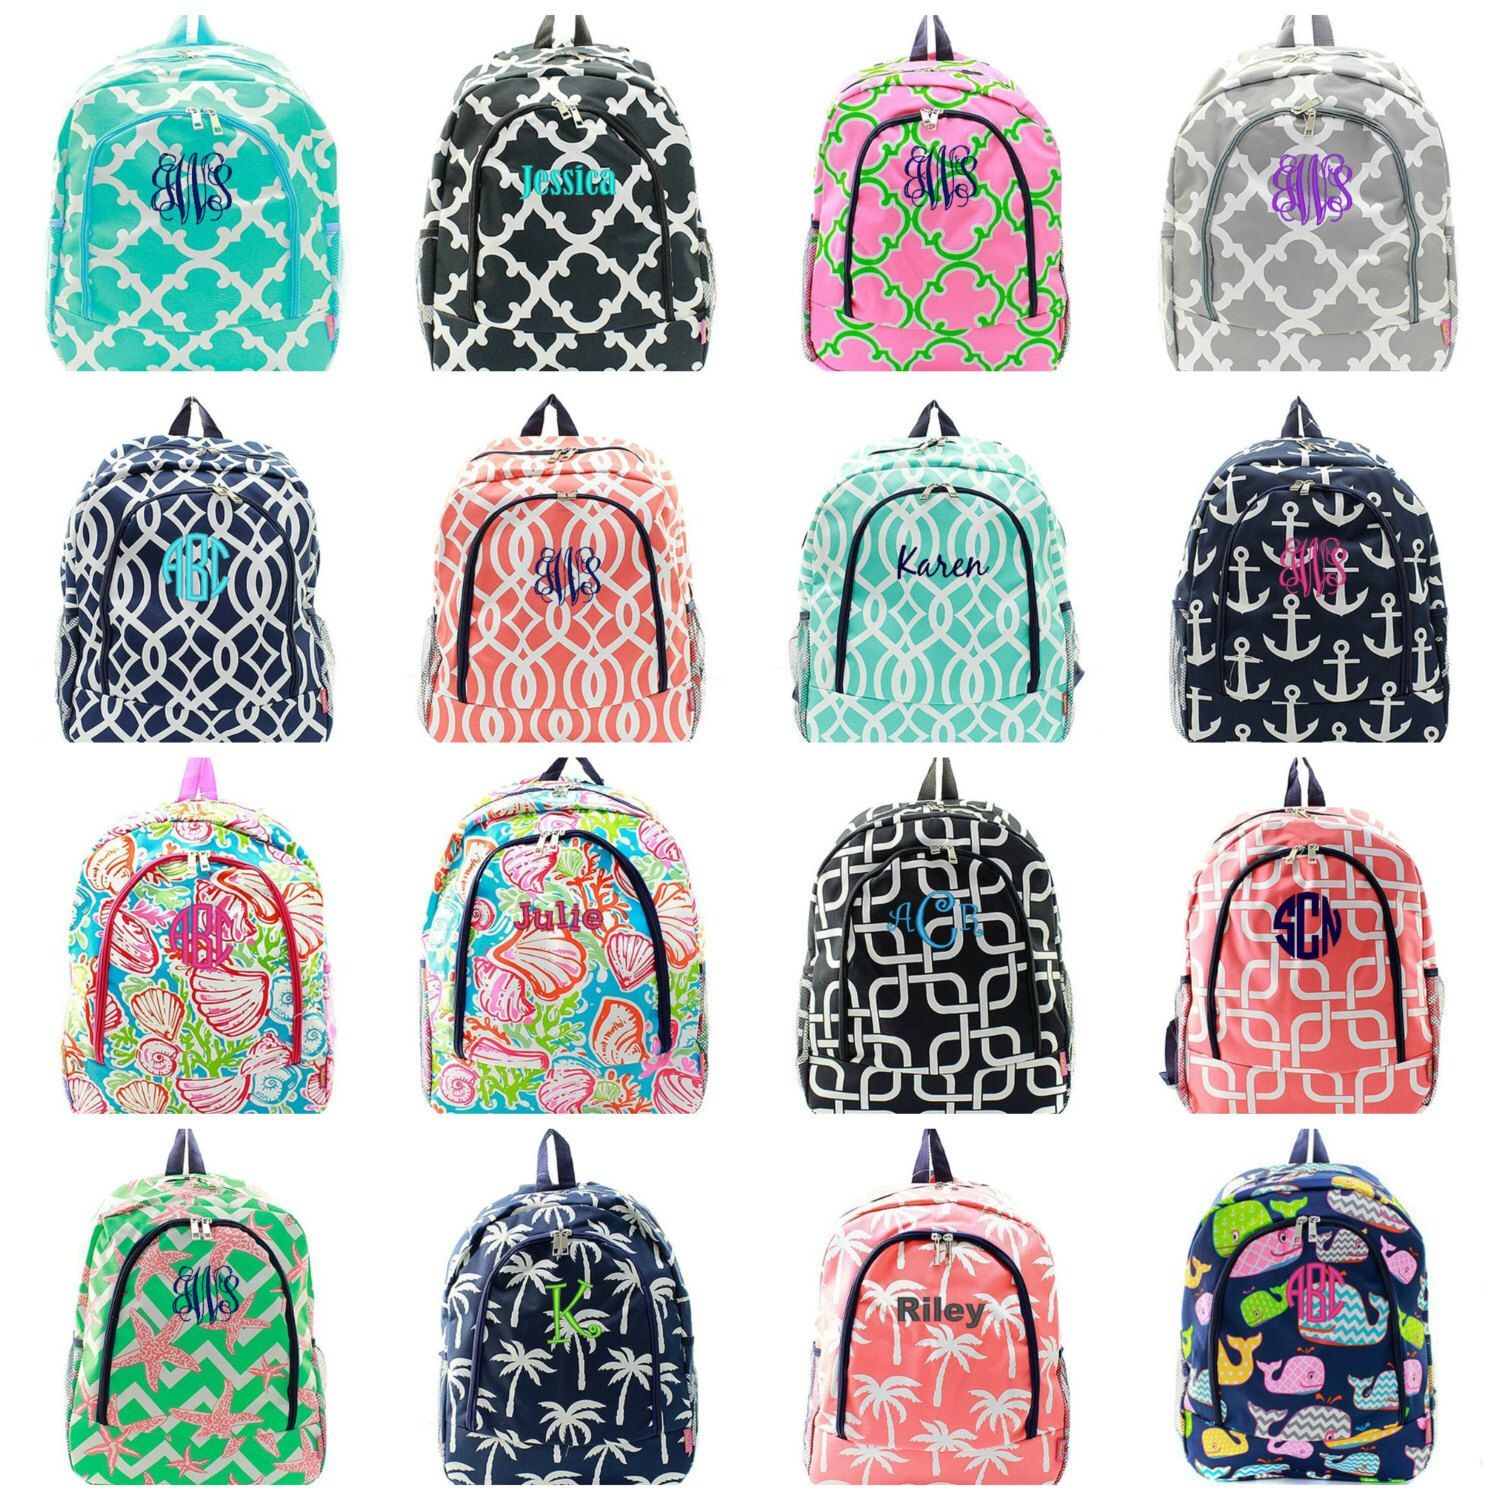 personalized backpack monogrammed bookbag 30 patterns to choose